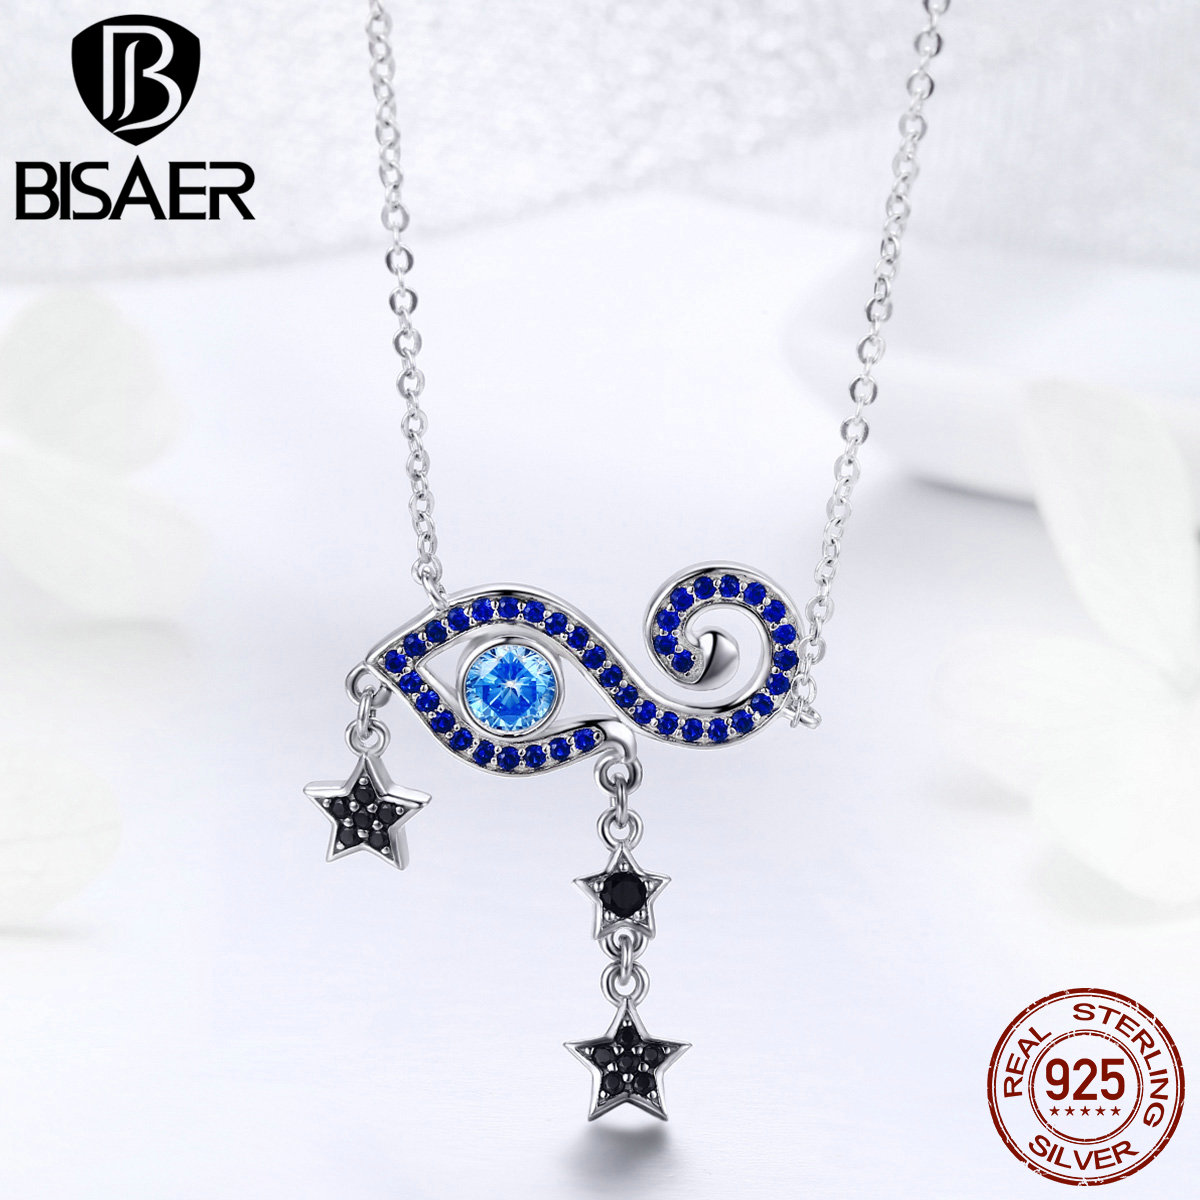 BISAER Genuine 925 Sterling Silver Blue CZ Magic Eye Stars Pendant & Necklace Chain Link Necklaces Collier Silver Jewerly GXN245